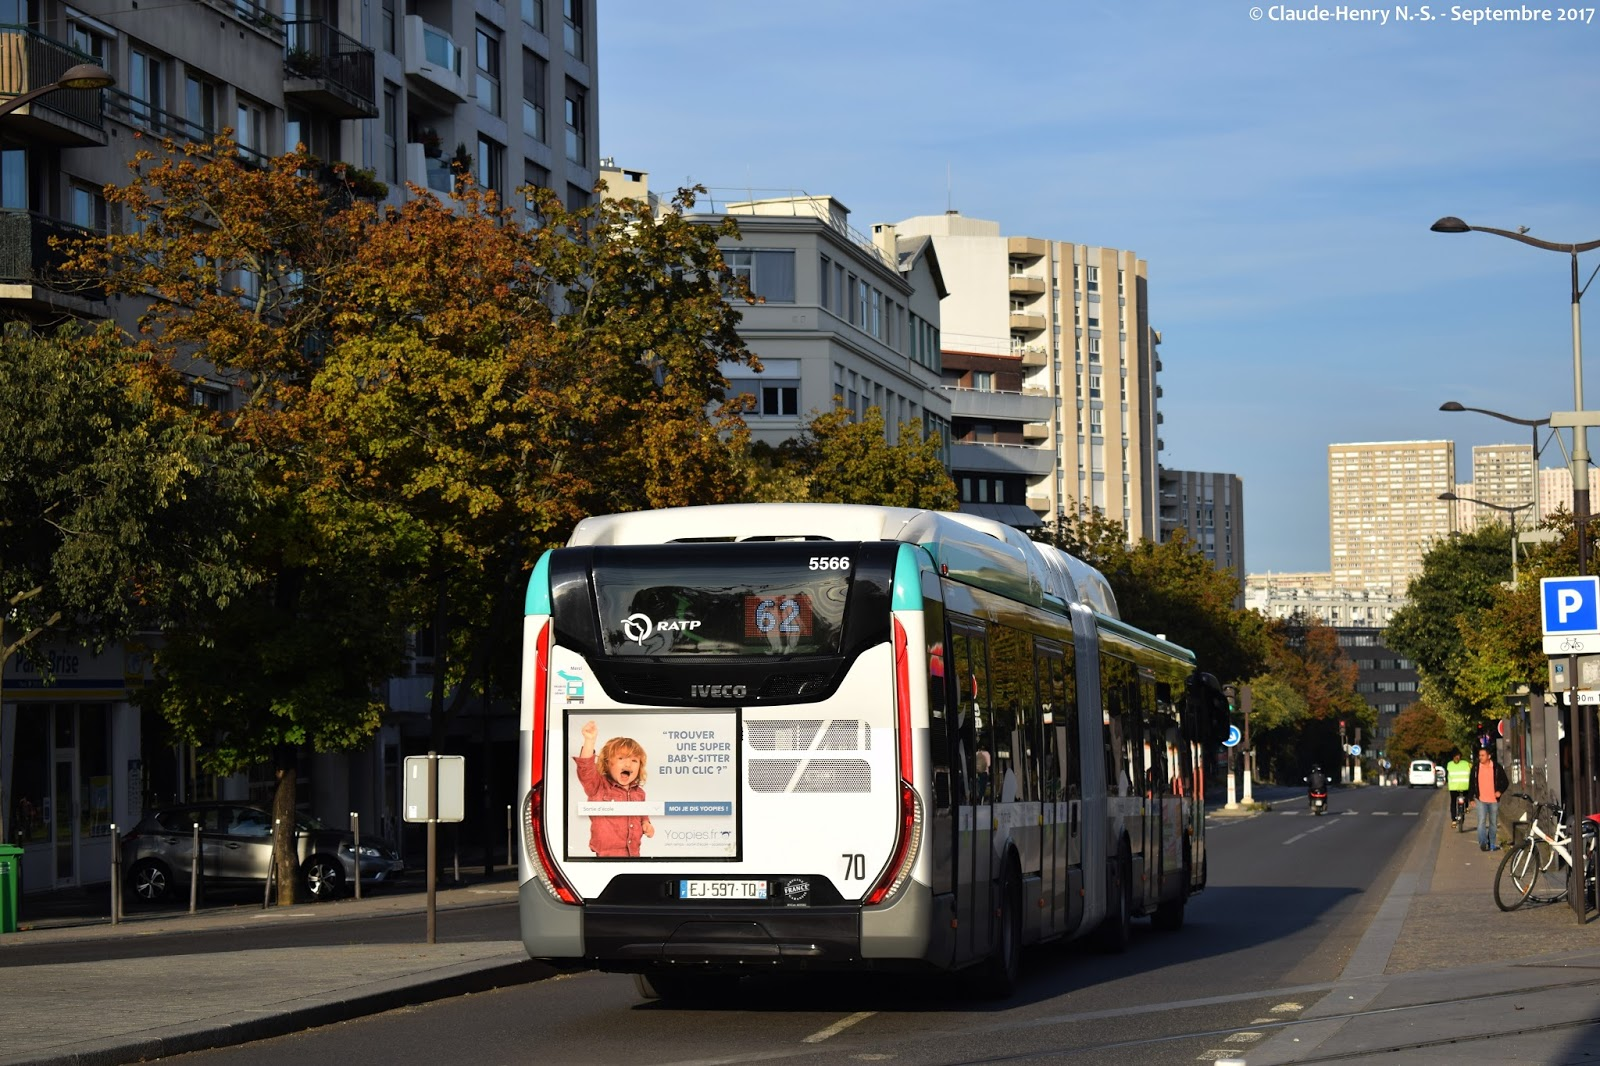 ratp la ligne de bus ratp 187 thiais go te aux citelis 18 spec de la ligne 62 quais de. Black Bedroom Furniture Sets. Home Design Ideas